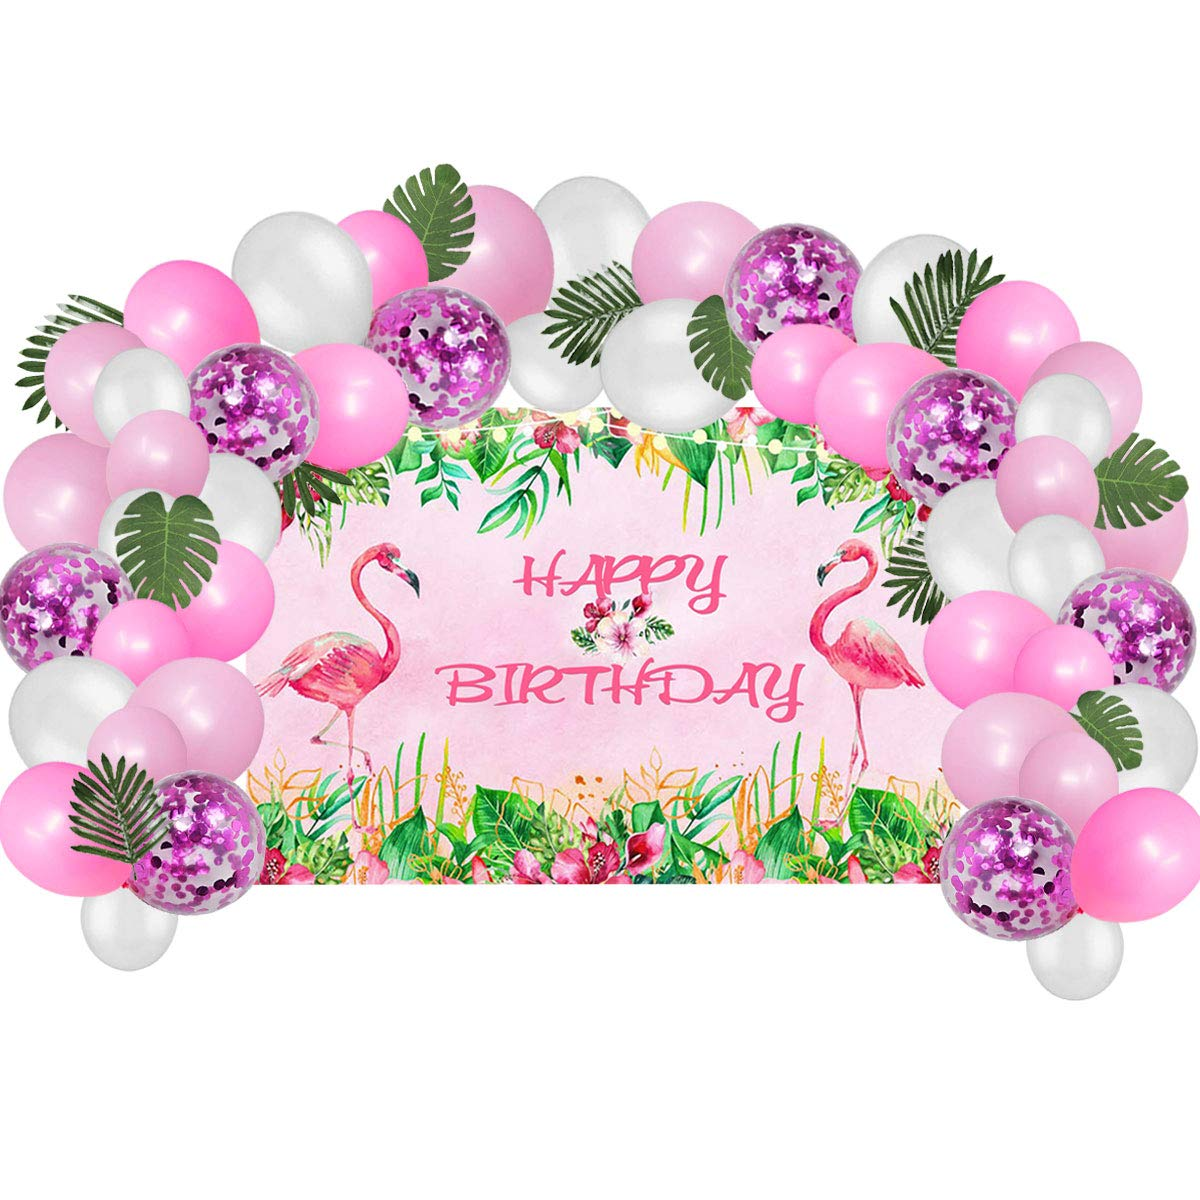 Flamingo Birthday Party Supplies Decorations, Pink Flamingo Backdrop With Balloons Kit For Kids Photo Background, Gift For Girls